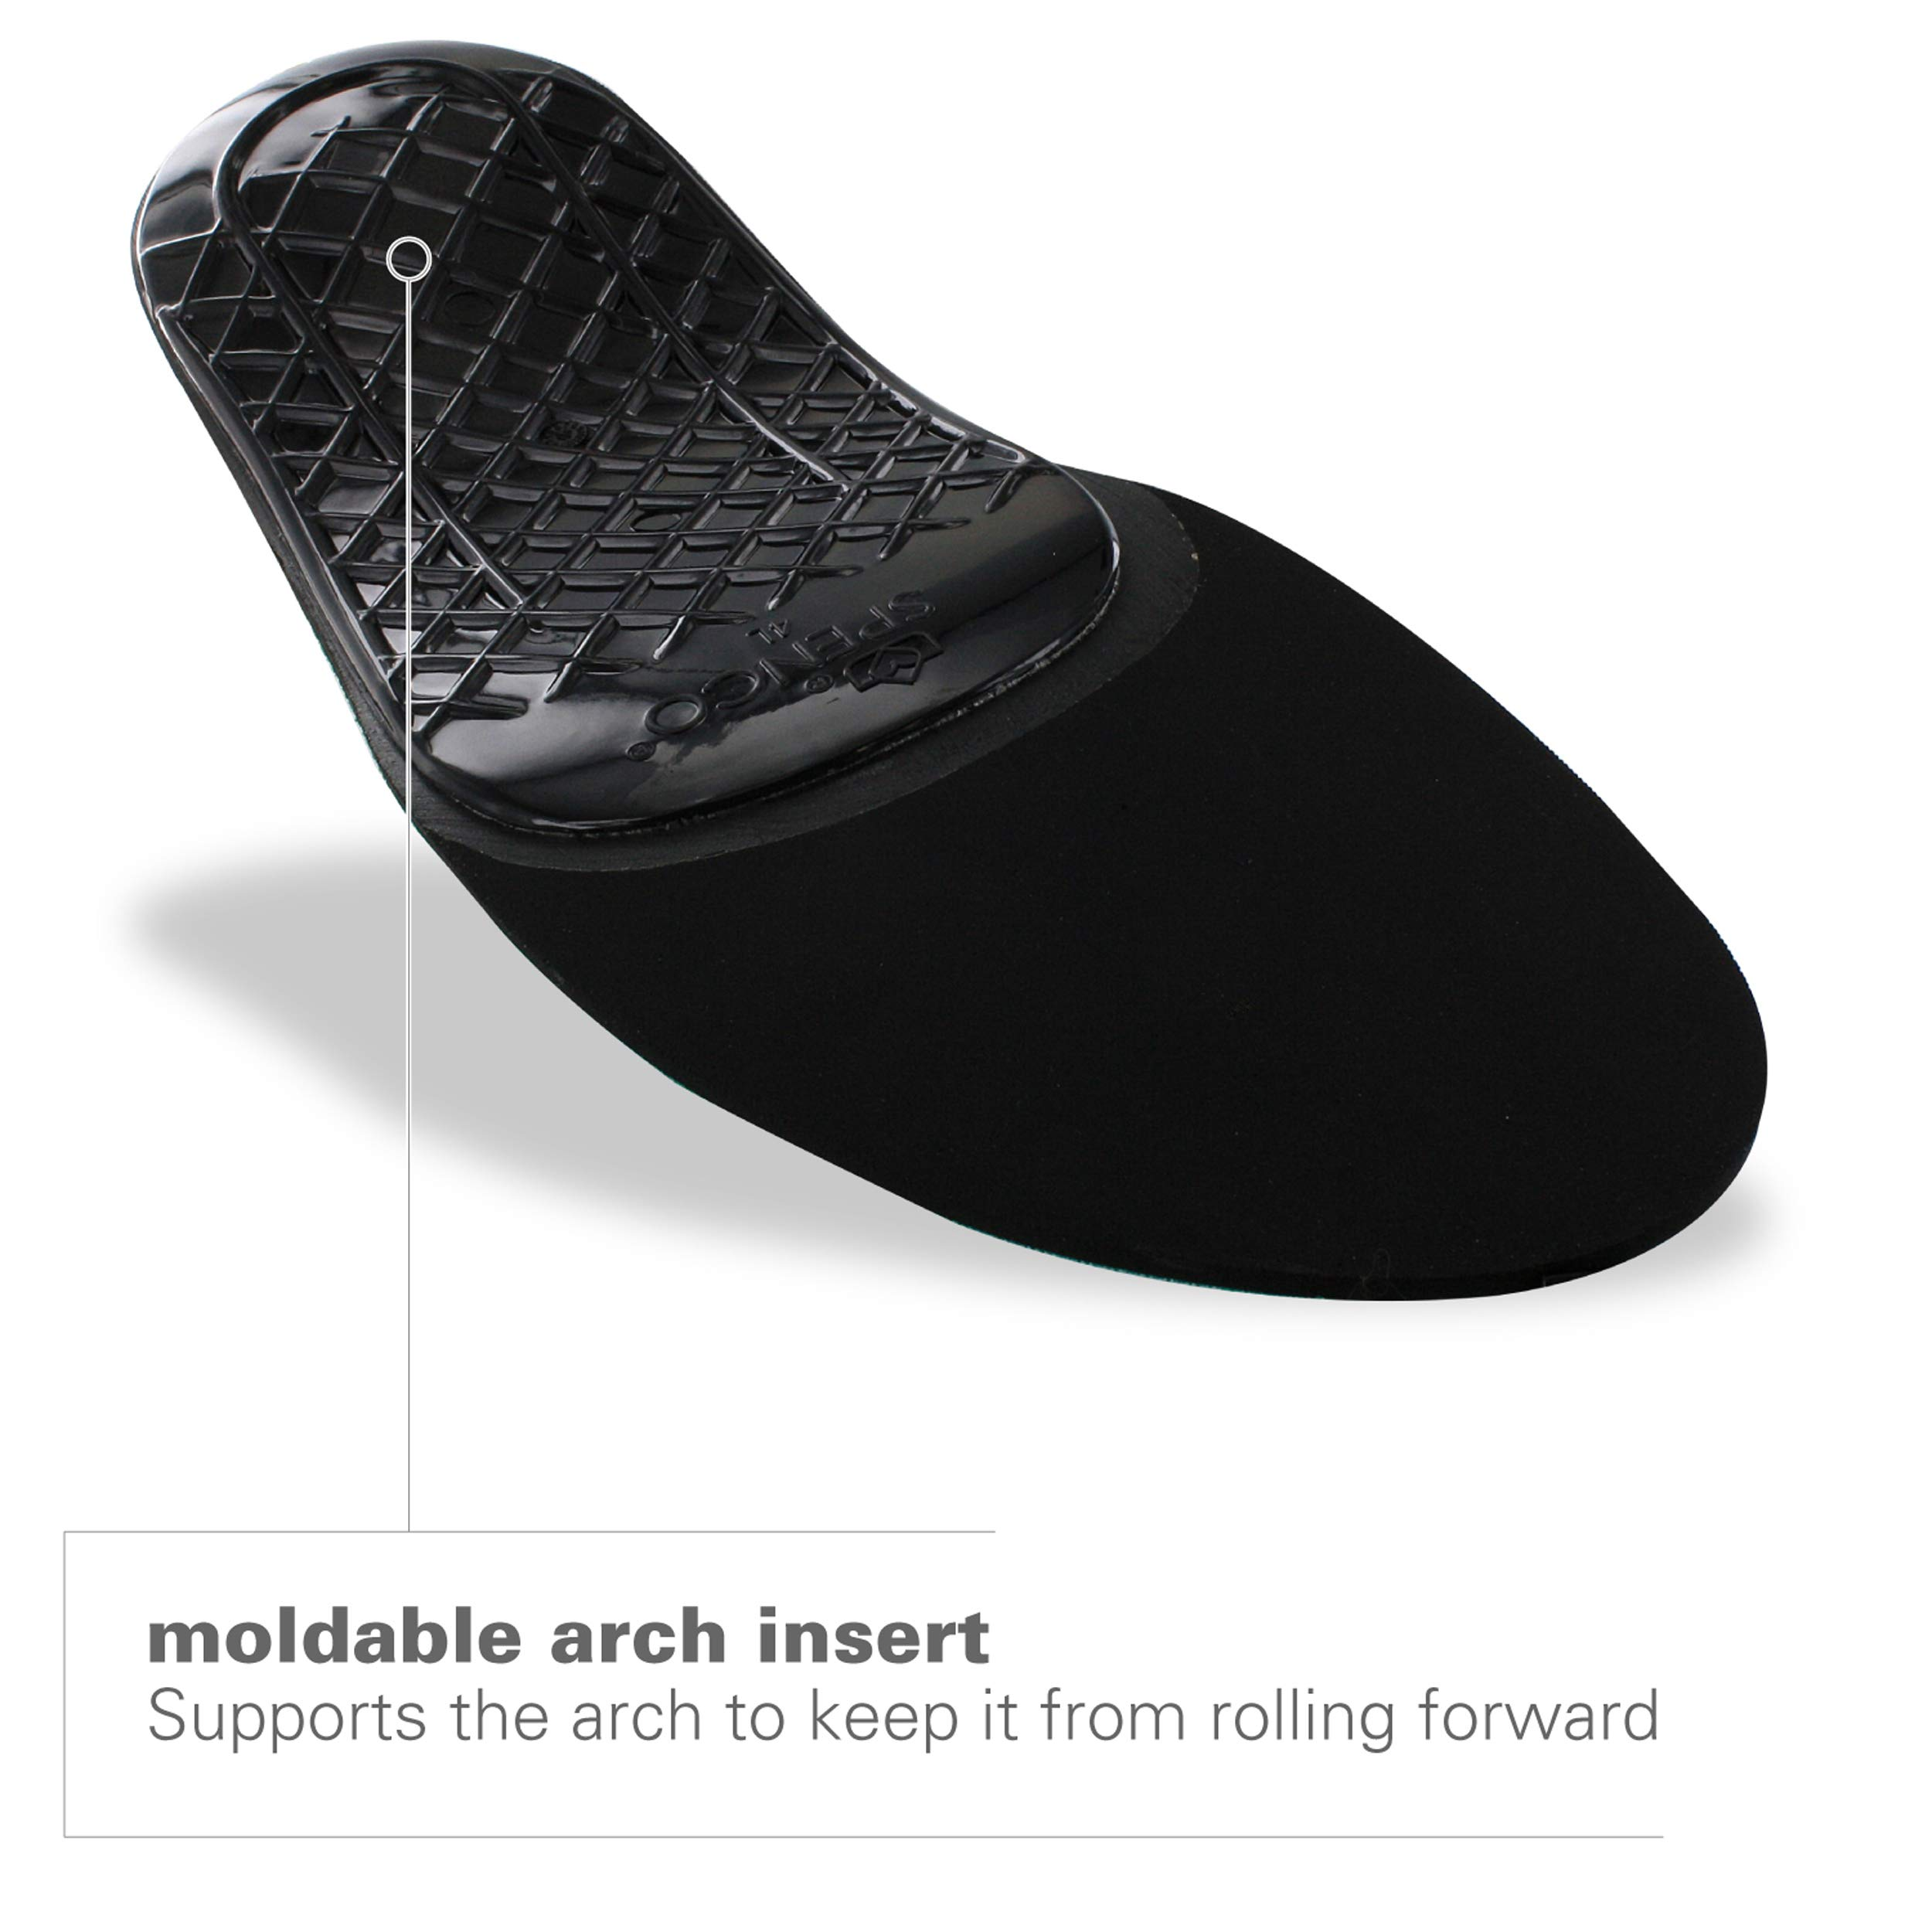 Spenco Rx Orthotic Arch Support Full Length Shoe Insoles, Women's 11-12.5/Men's 10-11.5 by Spenco (Image #2)